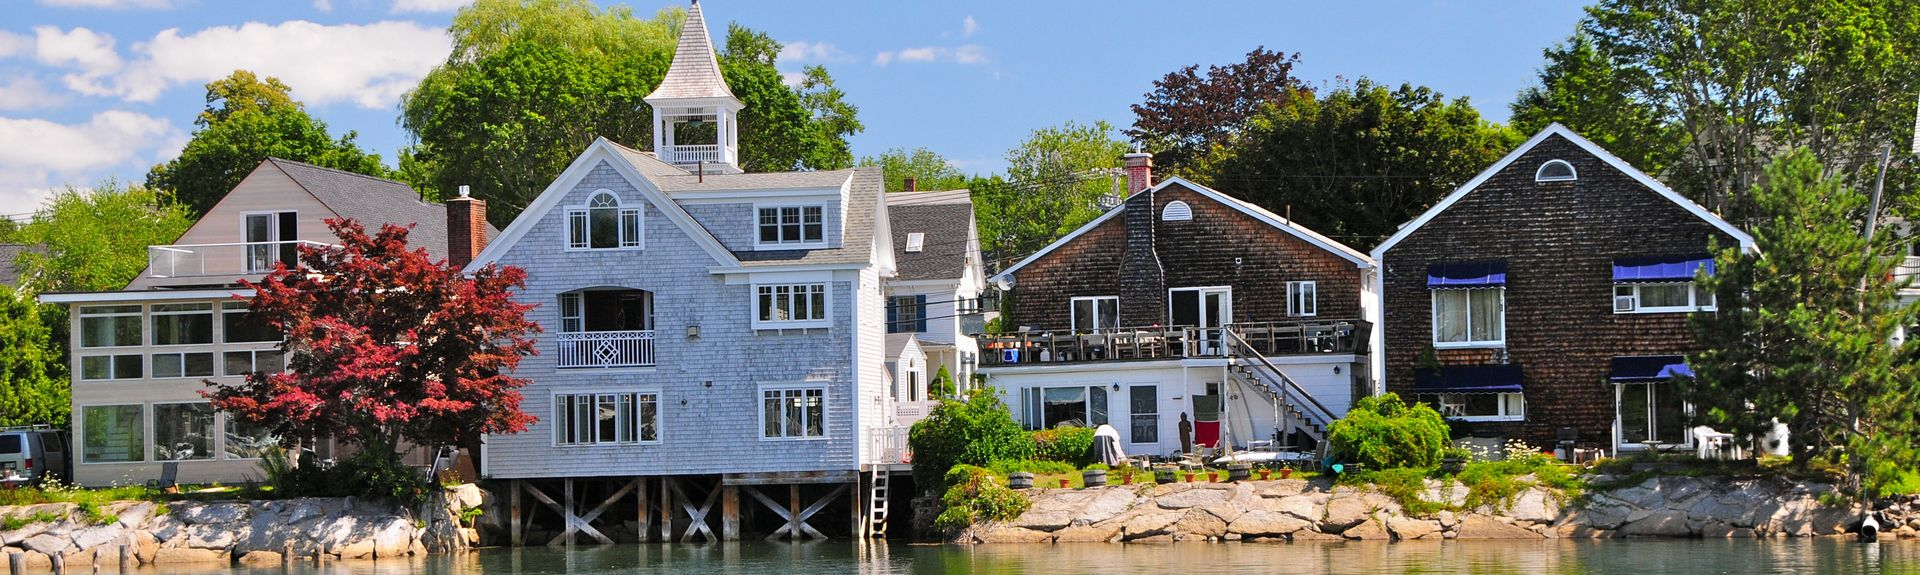 Kennebunkport, Maine, Estados Unidos